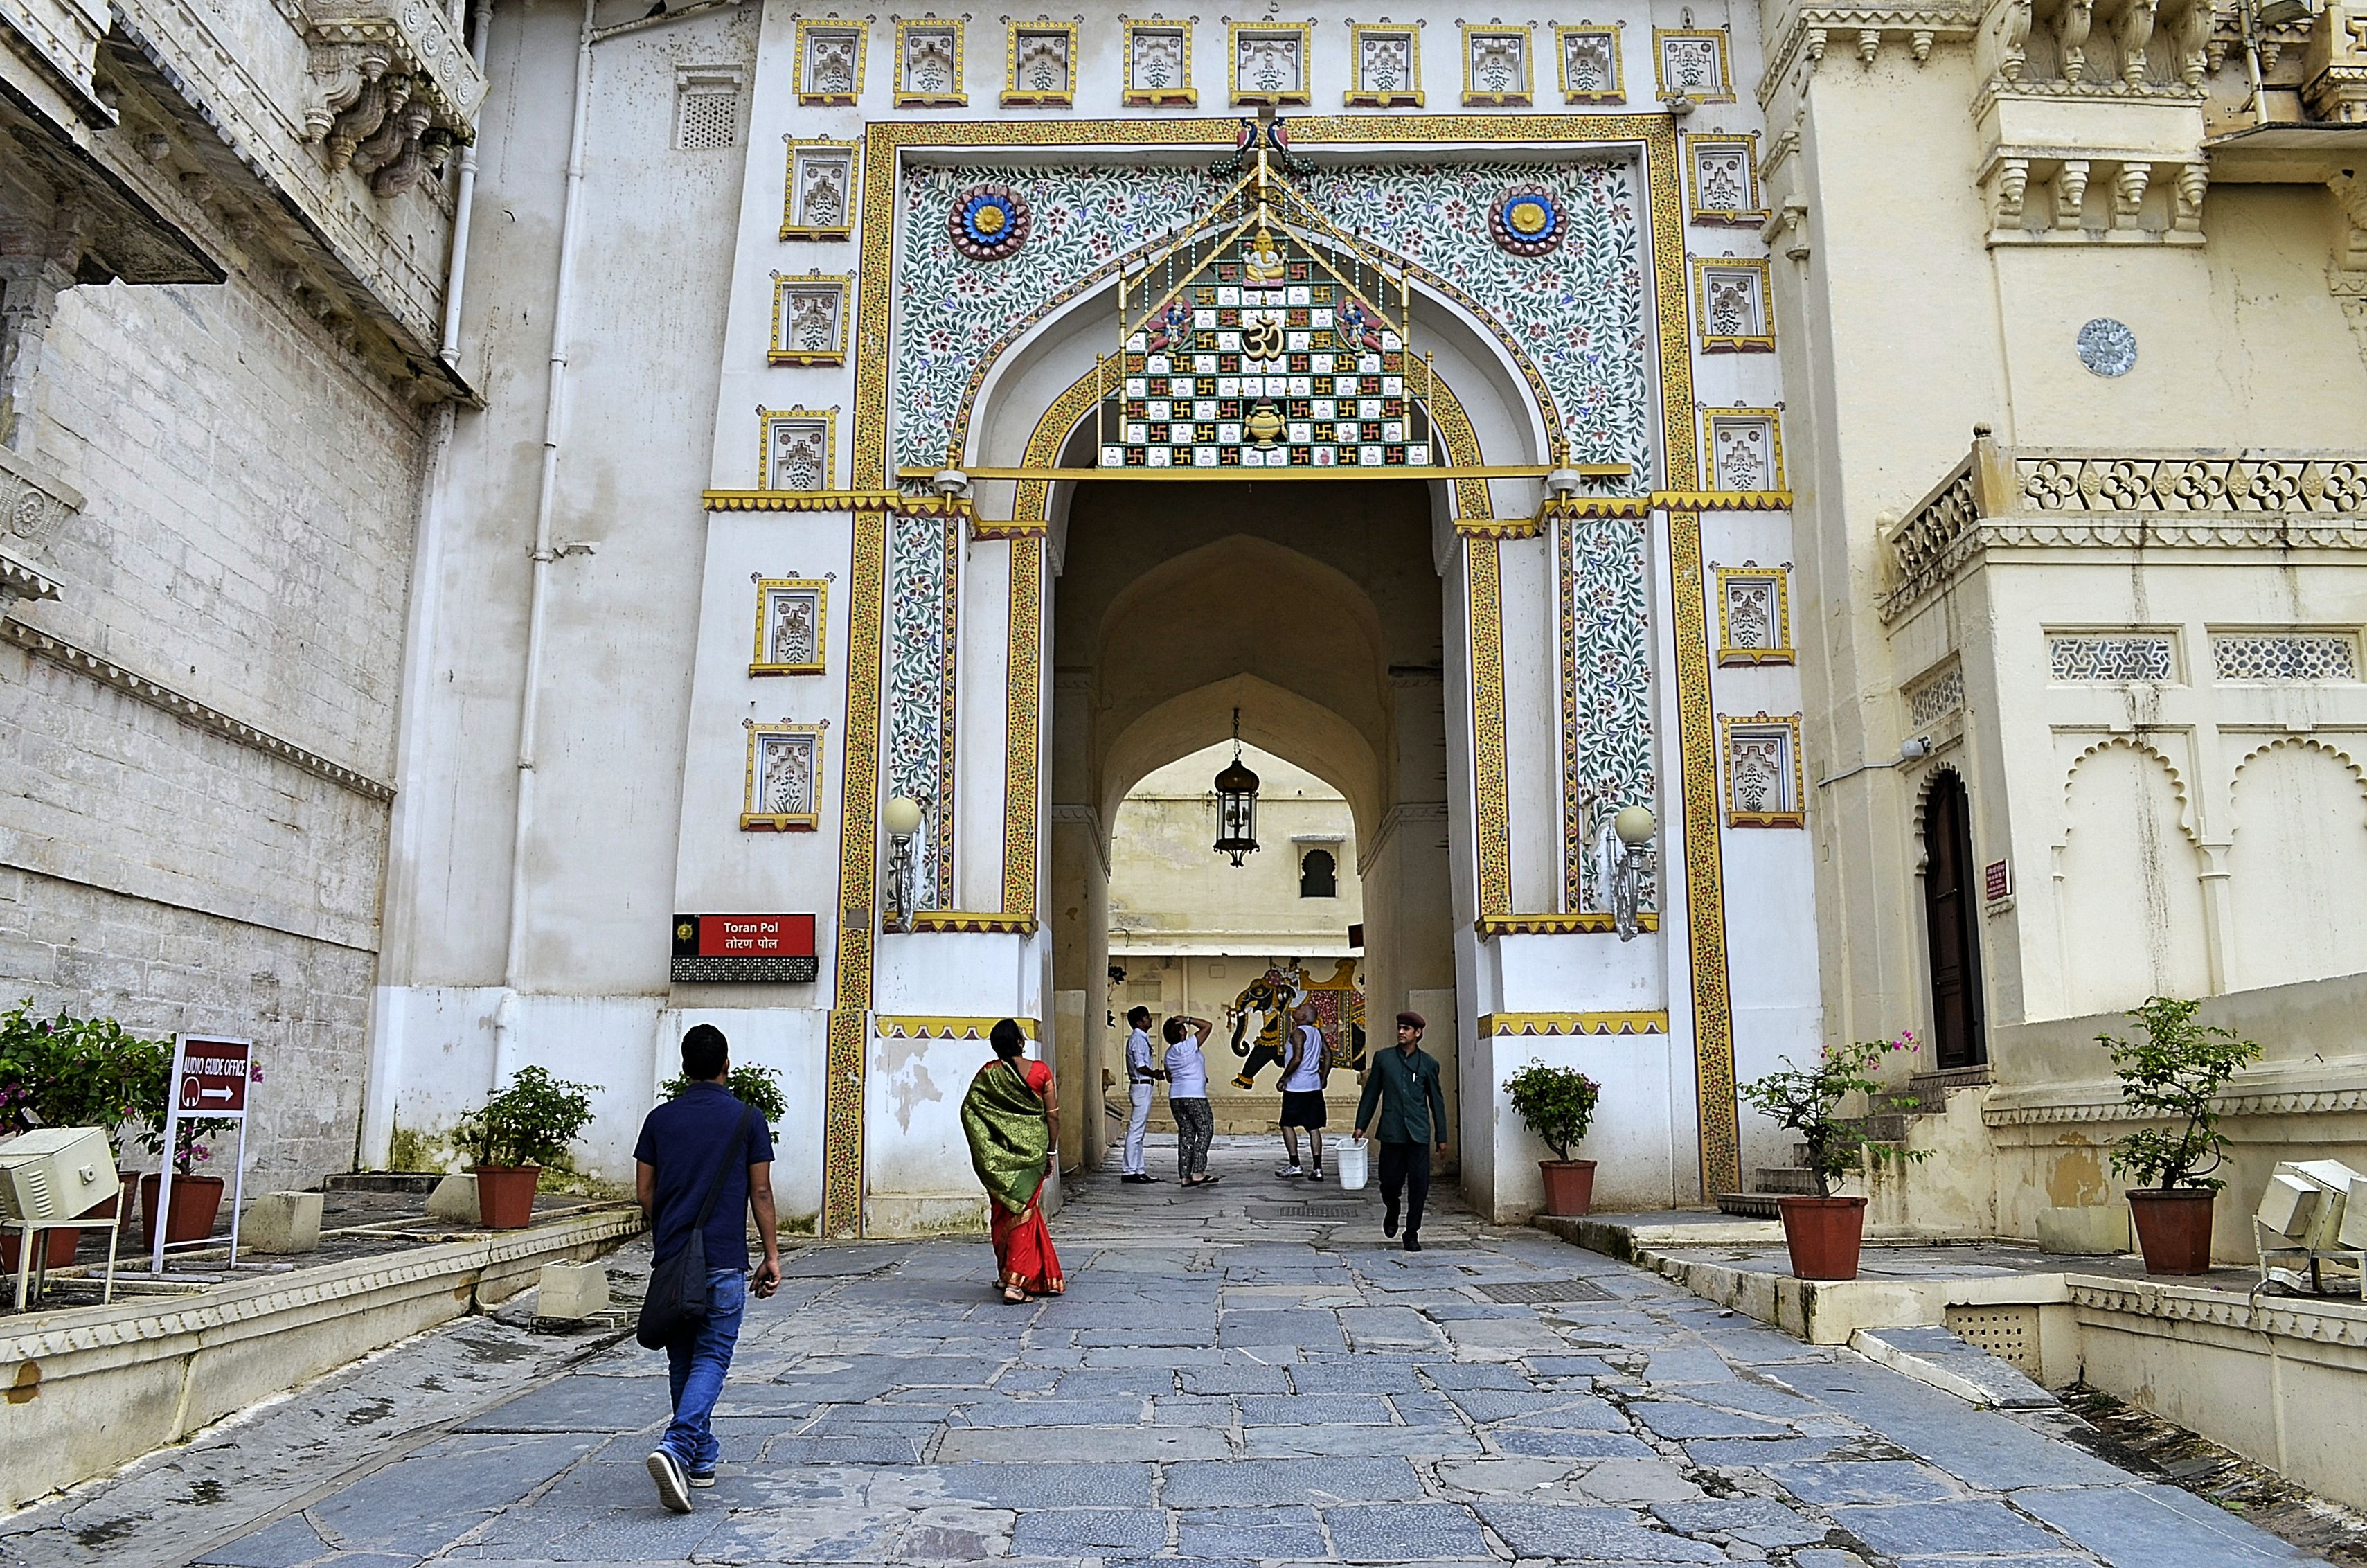 A Look Inside the Udaipur City Palace Museum